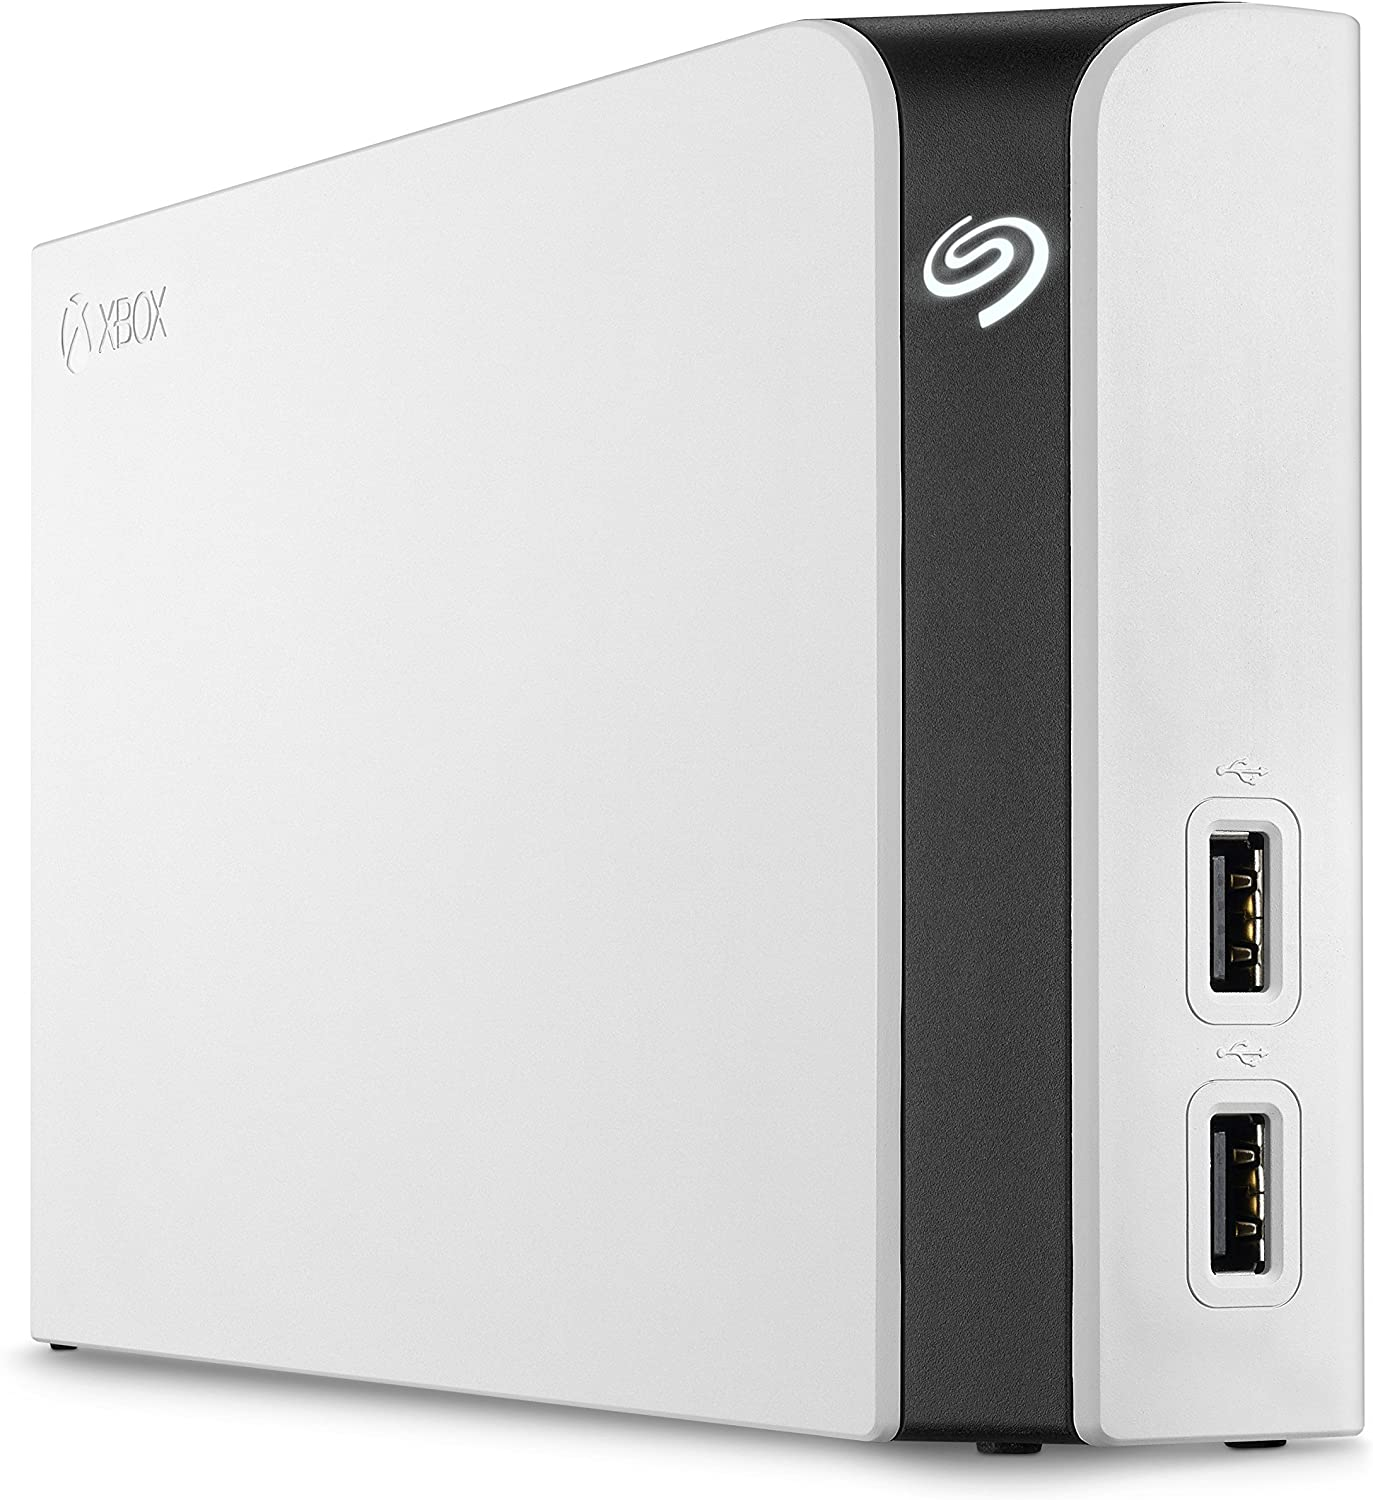 Seagate STGG8000400 Game Drive Hub 8TB External Hard Drive Desktop HDD with Dual USB Ports - White, Designed for Xbox One